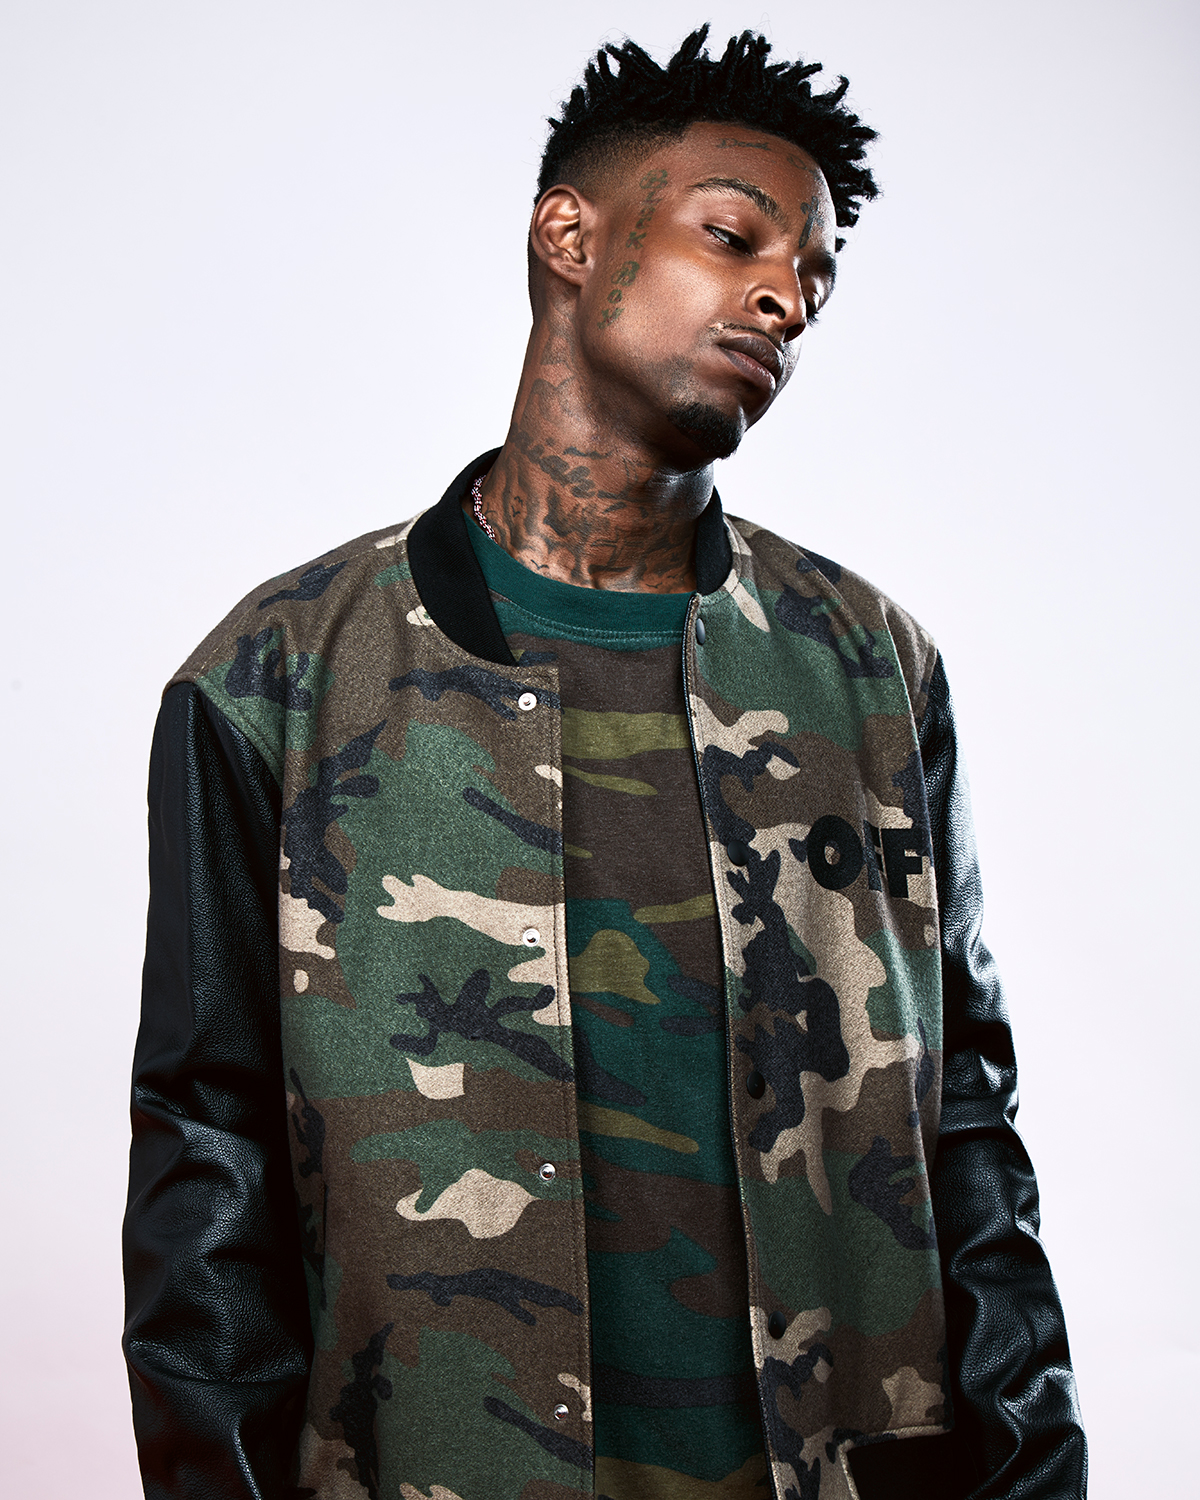 21 savage - photo #6